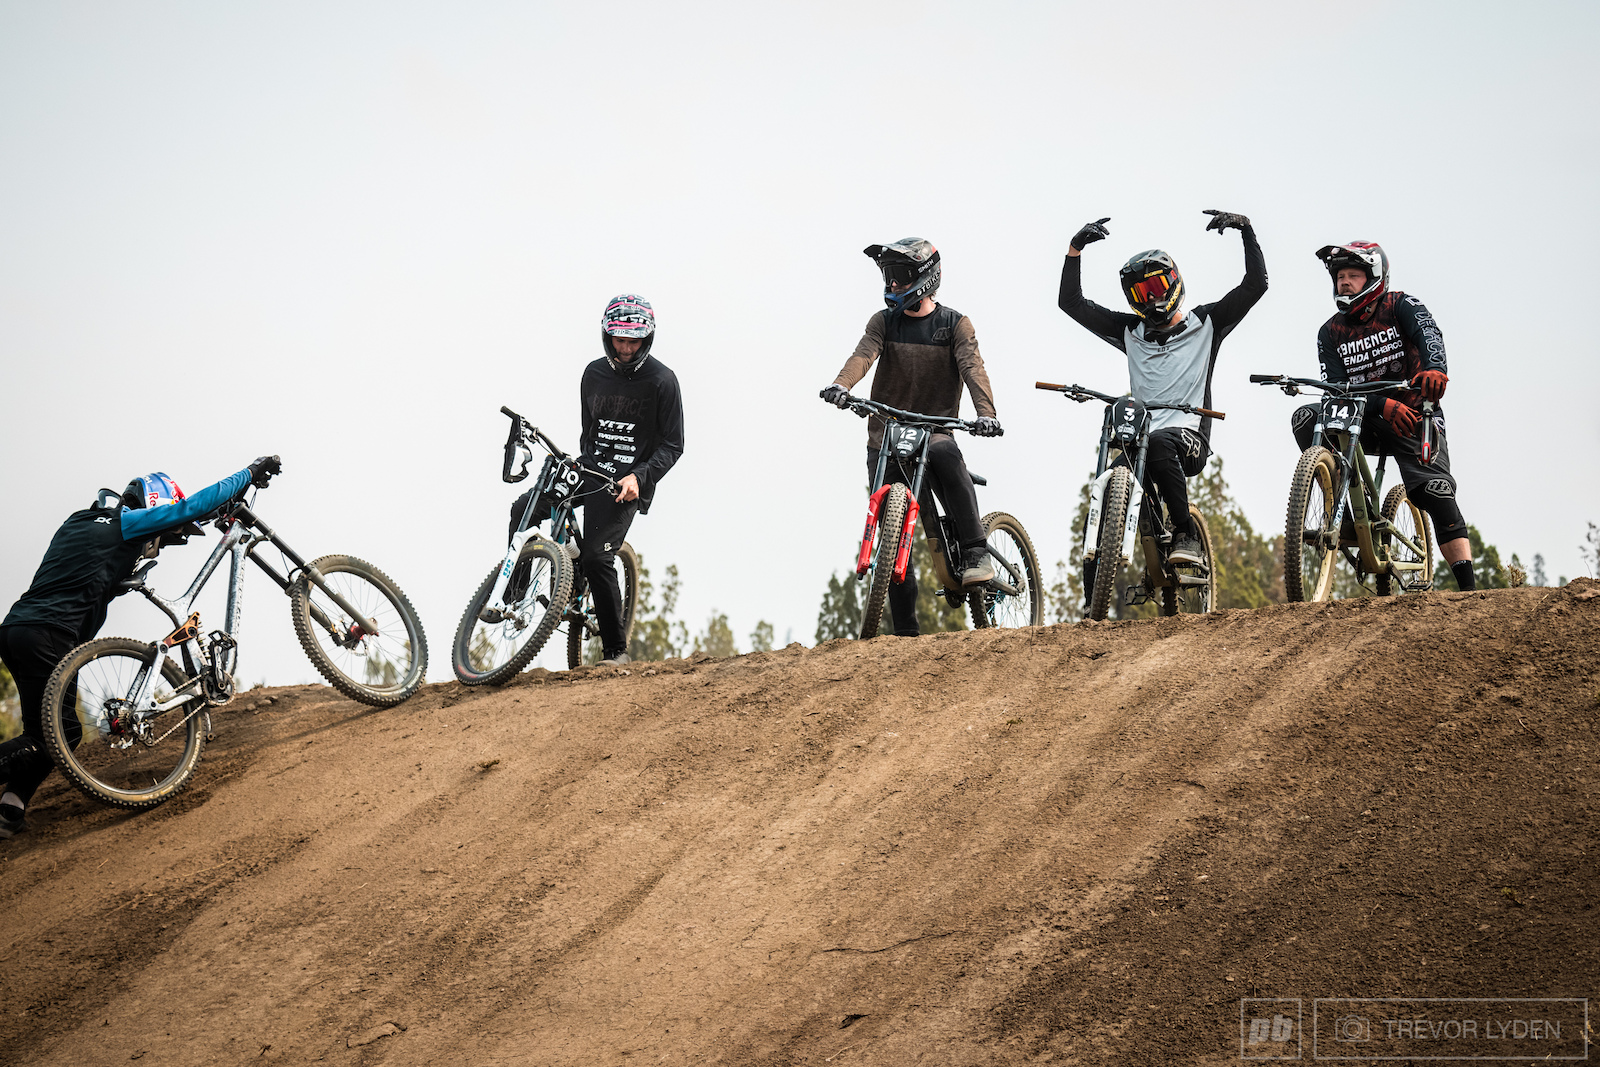 Jam session on the lower jump feature.